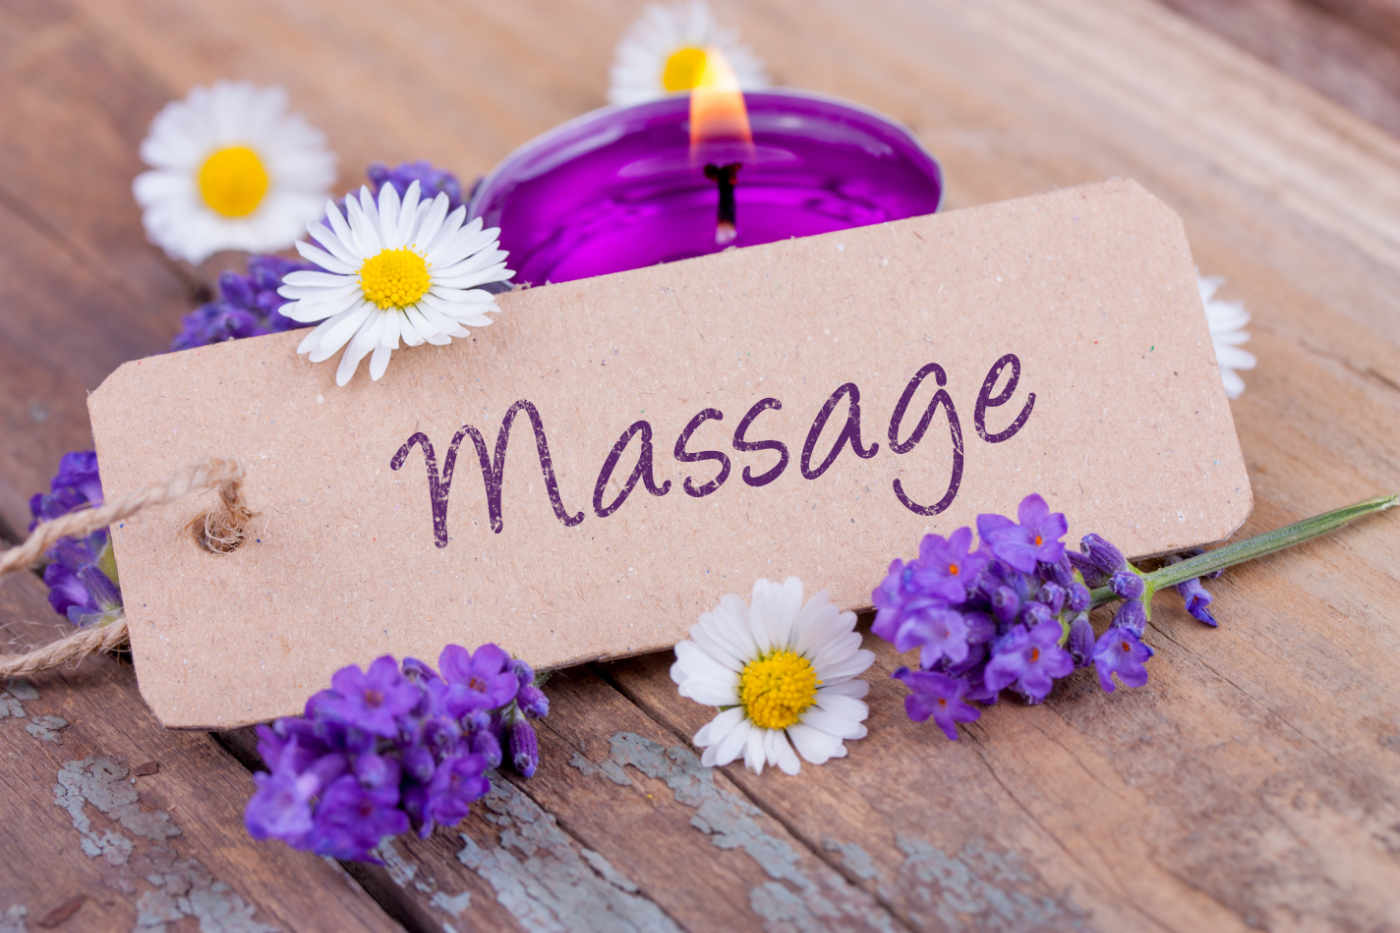 Best Deep Tissue, Therapeutic Massage for Back Pain, Stress Relief, Migraines, Headaches, TMJ, Tight Muscles, Richmond Henrico Virginia 23227 23228 23060